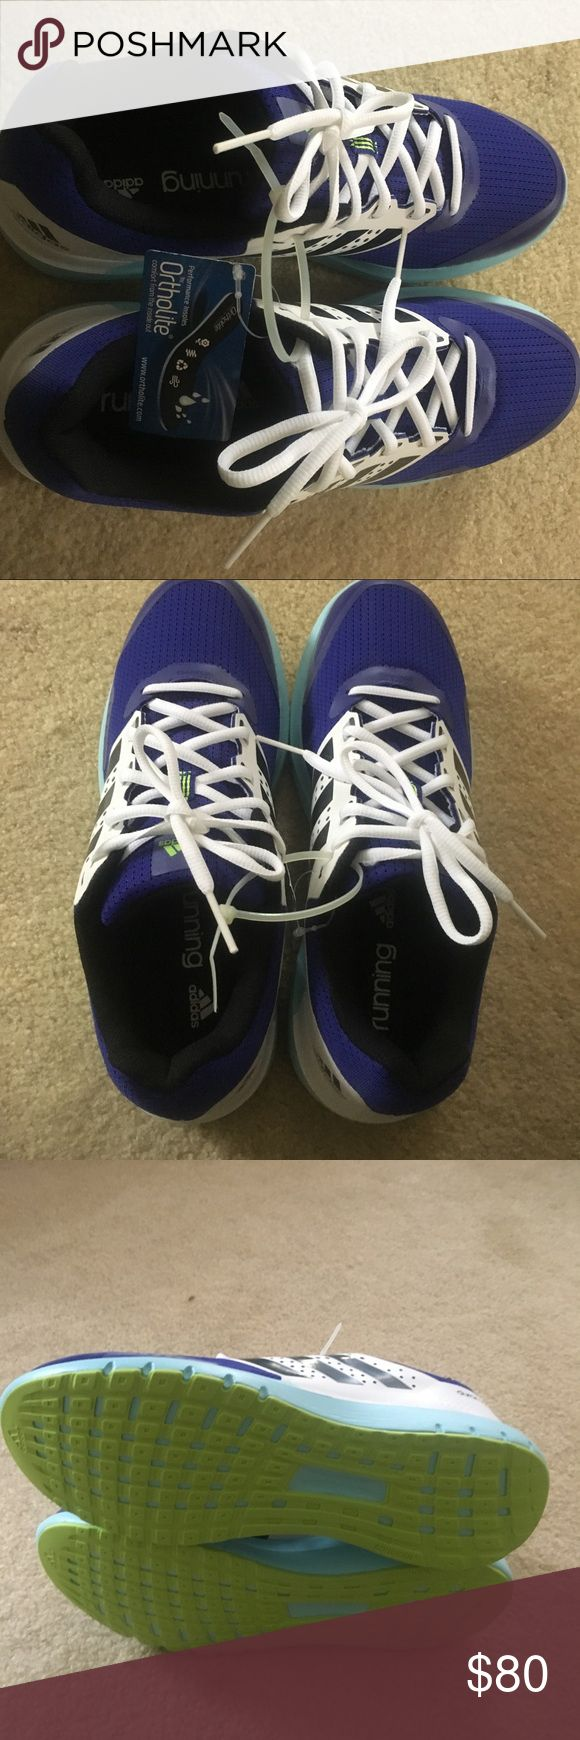 Adidas size 10 women's sneakers Adidas women's size 10 ortholite running shoe. Brand new never worn. Still attached with zip tie. Colors are purple, white, aqua blue and lime green bottom. adidas Shoes Sneakers